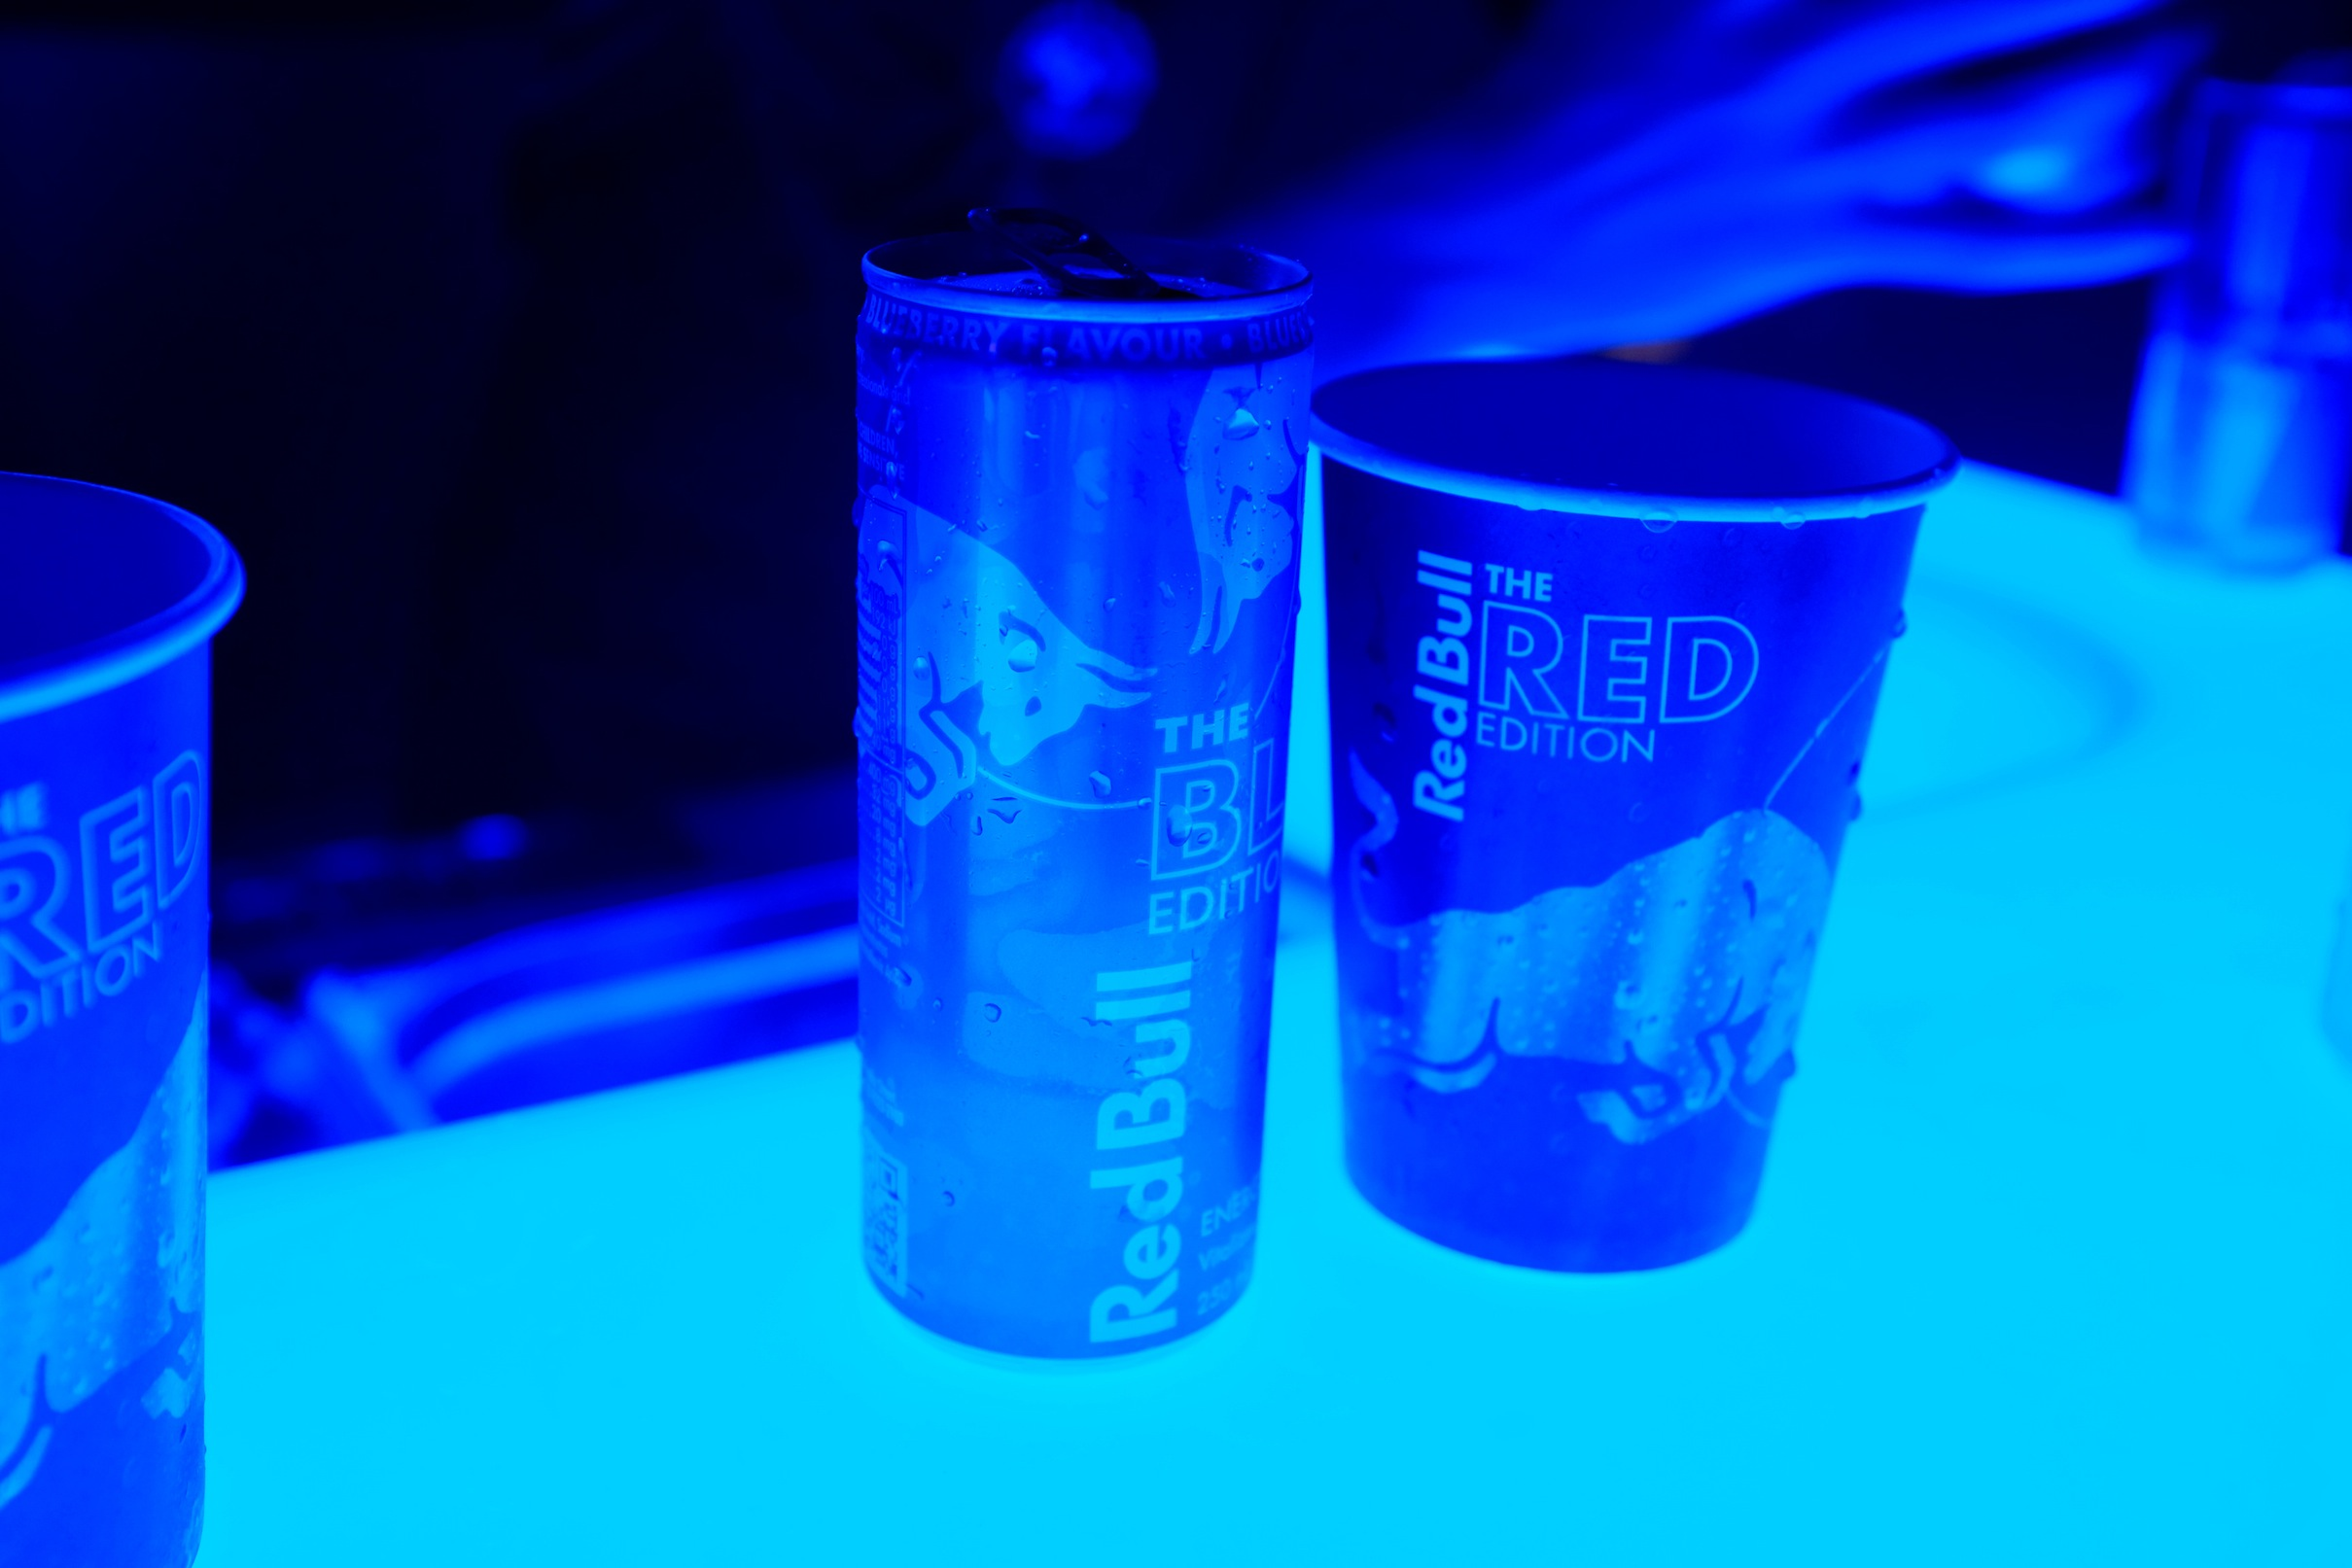 red bull, flying bach, dance, street style, street dance, street dancing, classical music, perth life, perth nightlife, vodka, mix, alcohol, food, VIP party, blueberry red bull, dance scene, breaks, performance, blogger, perth blogger, nezuki